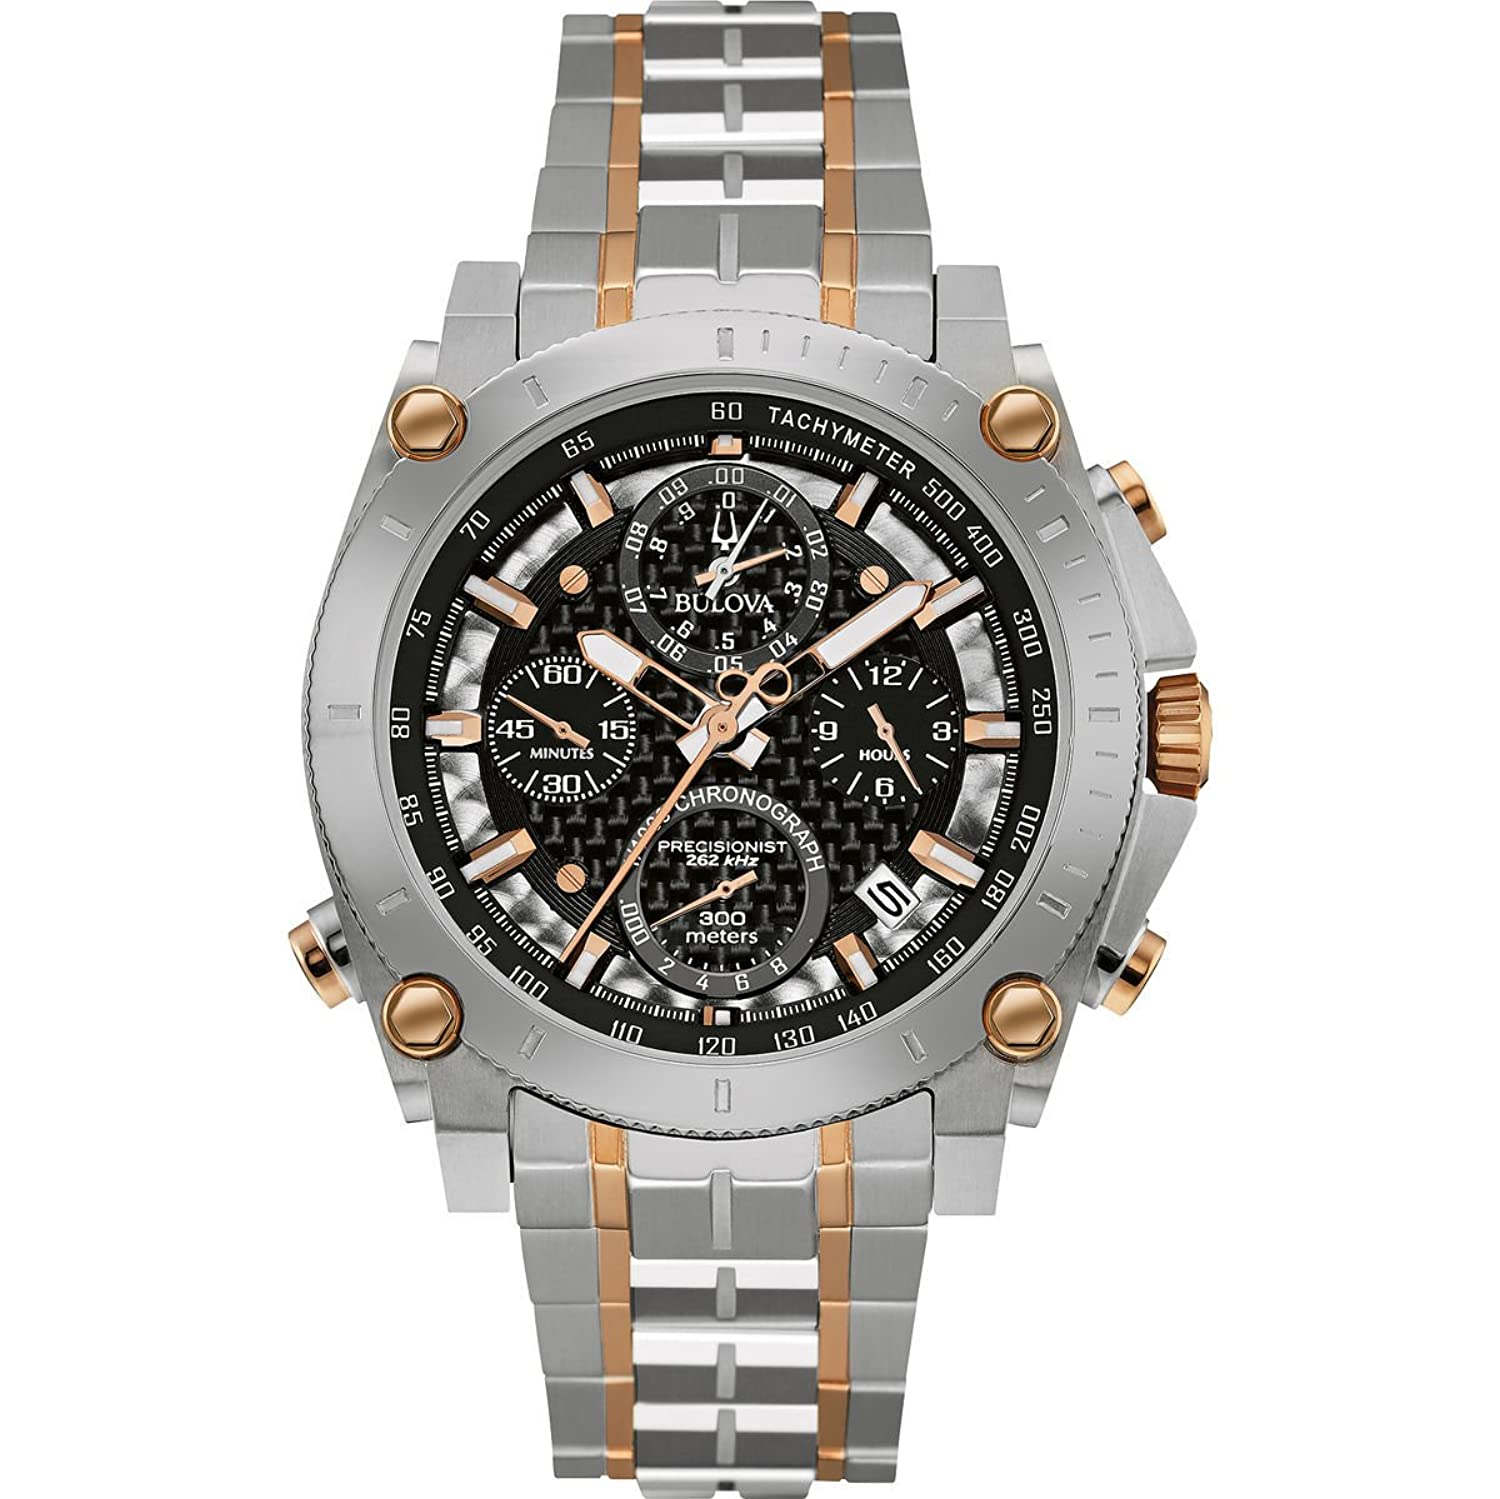 amazon co uk bulova watches bulova men s designer chronograph watch stainless steel bracelet two tone rose gold precisionist wrist watch